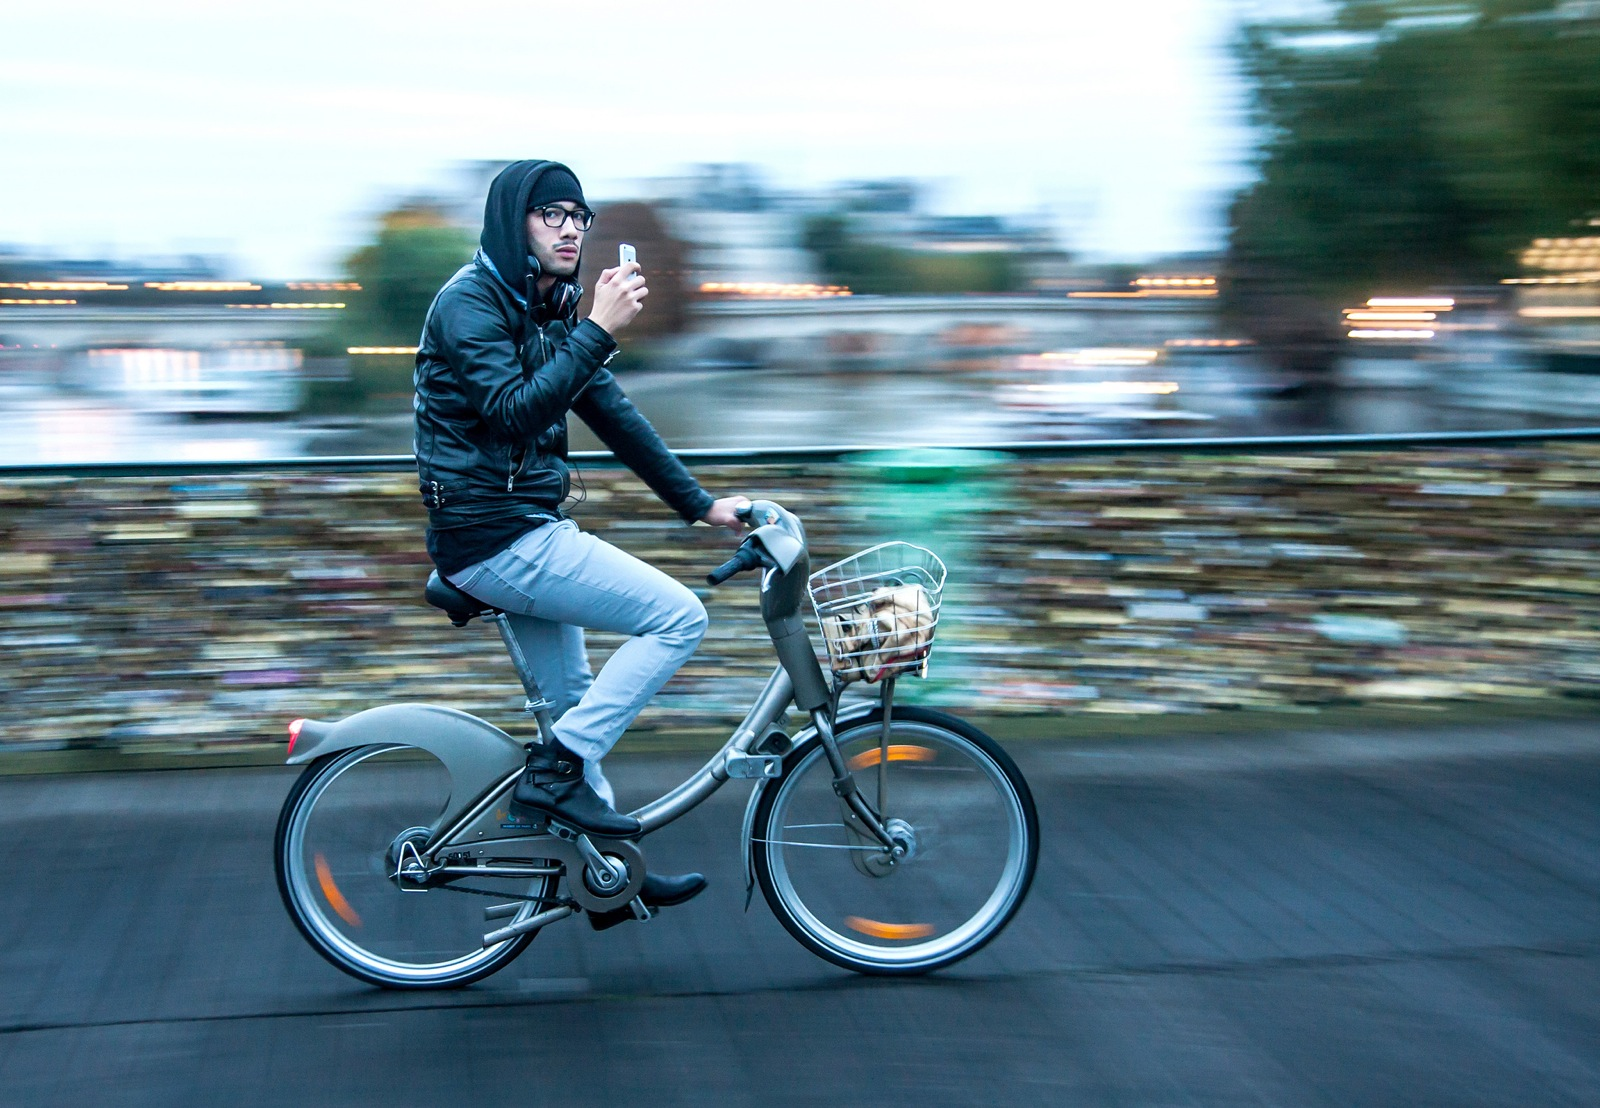 The Five Best Apps for Food-Lovers in Paris will help you find great local places to eat and drink on the road, like this young man on a bike crossing the love lock bridge across the River Seine, who's checking his phone on the way.